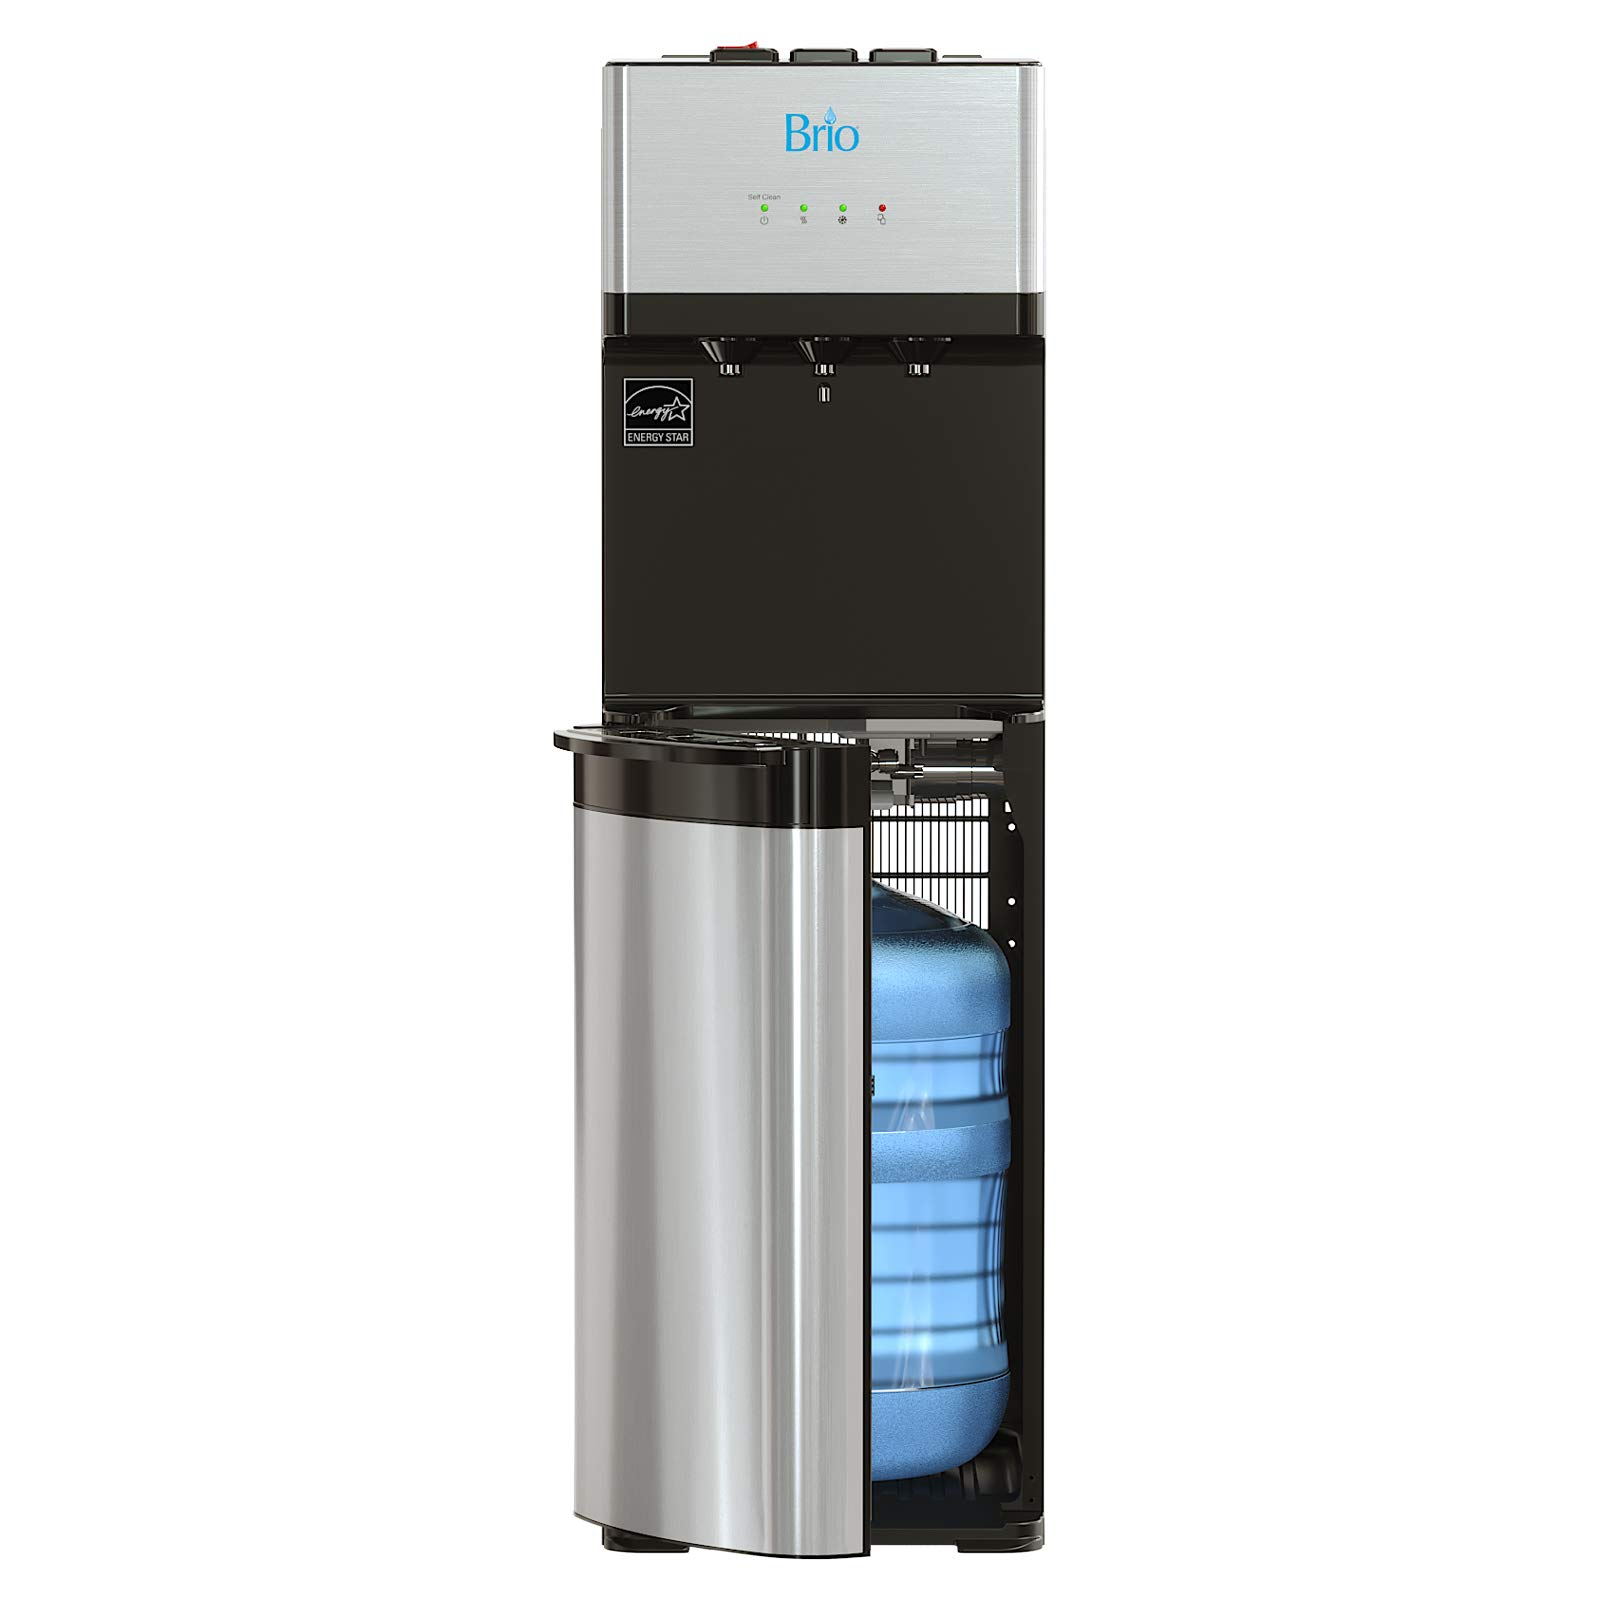 Brio Self Cleaning Bottom Loading Water Cooler Water Dispenser – Limited Edition – 3 Temperature Settings – Hot, Cold & Cool Water – UL/Energy Star Approved